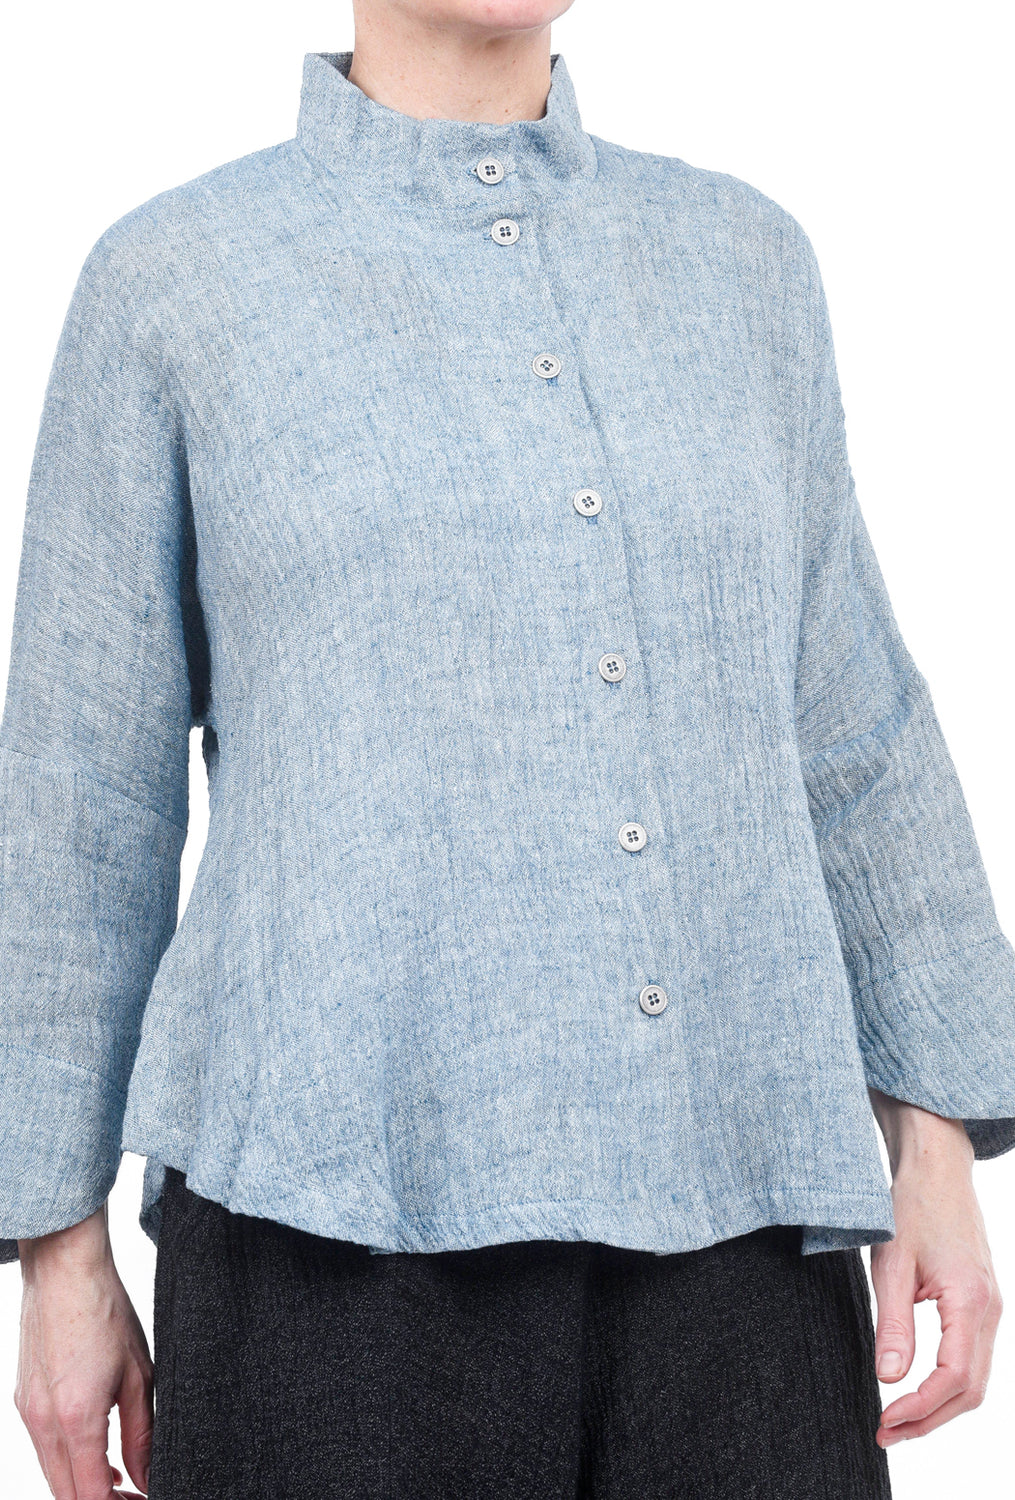 M Square Circular Linen Jacket, Sea Blue